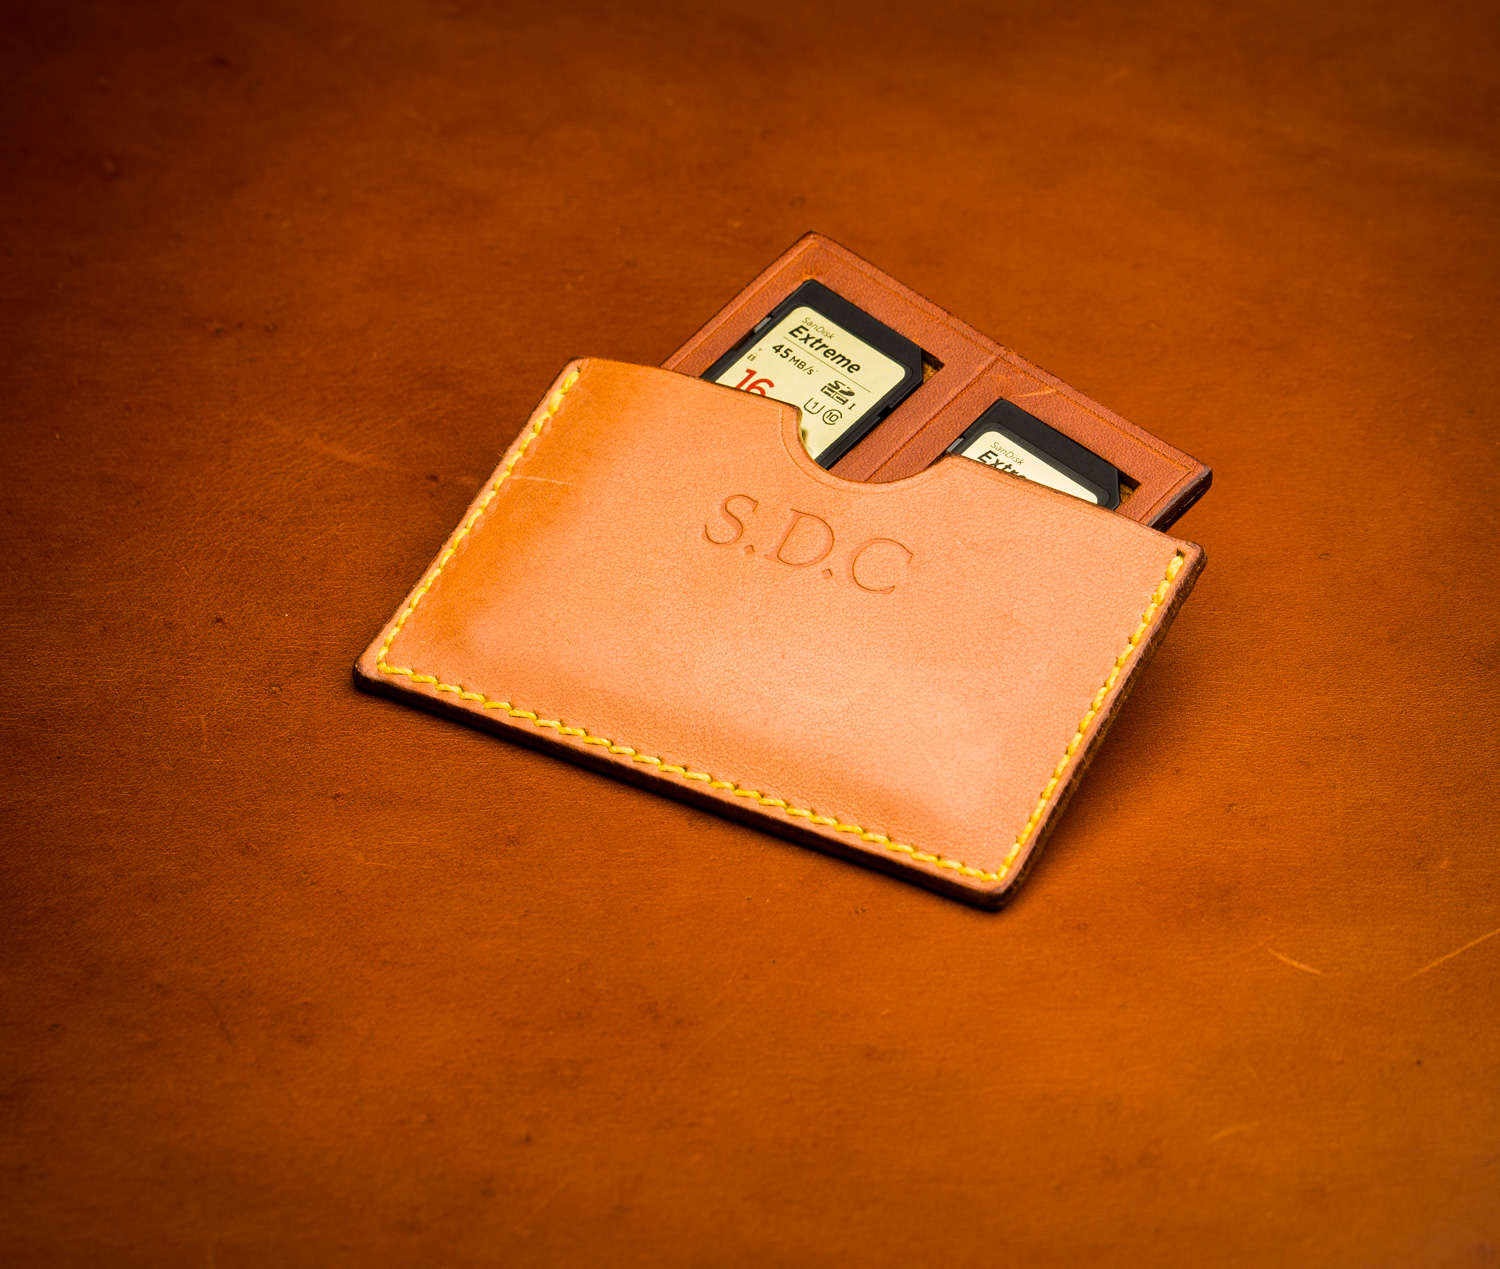 SD Card Holder in Leather